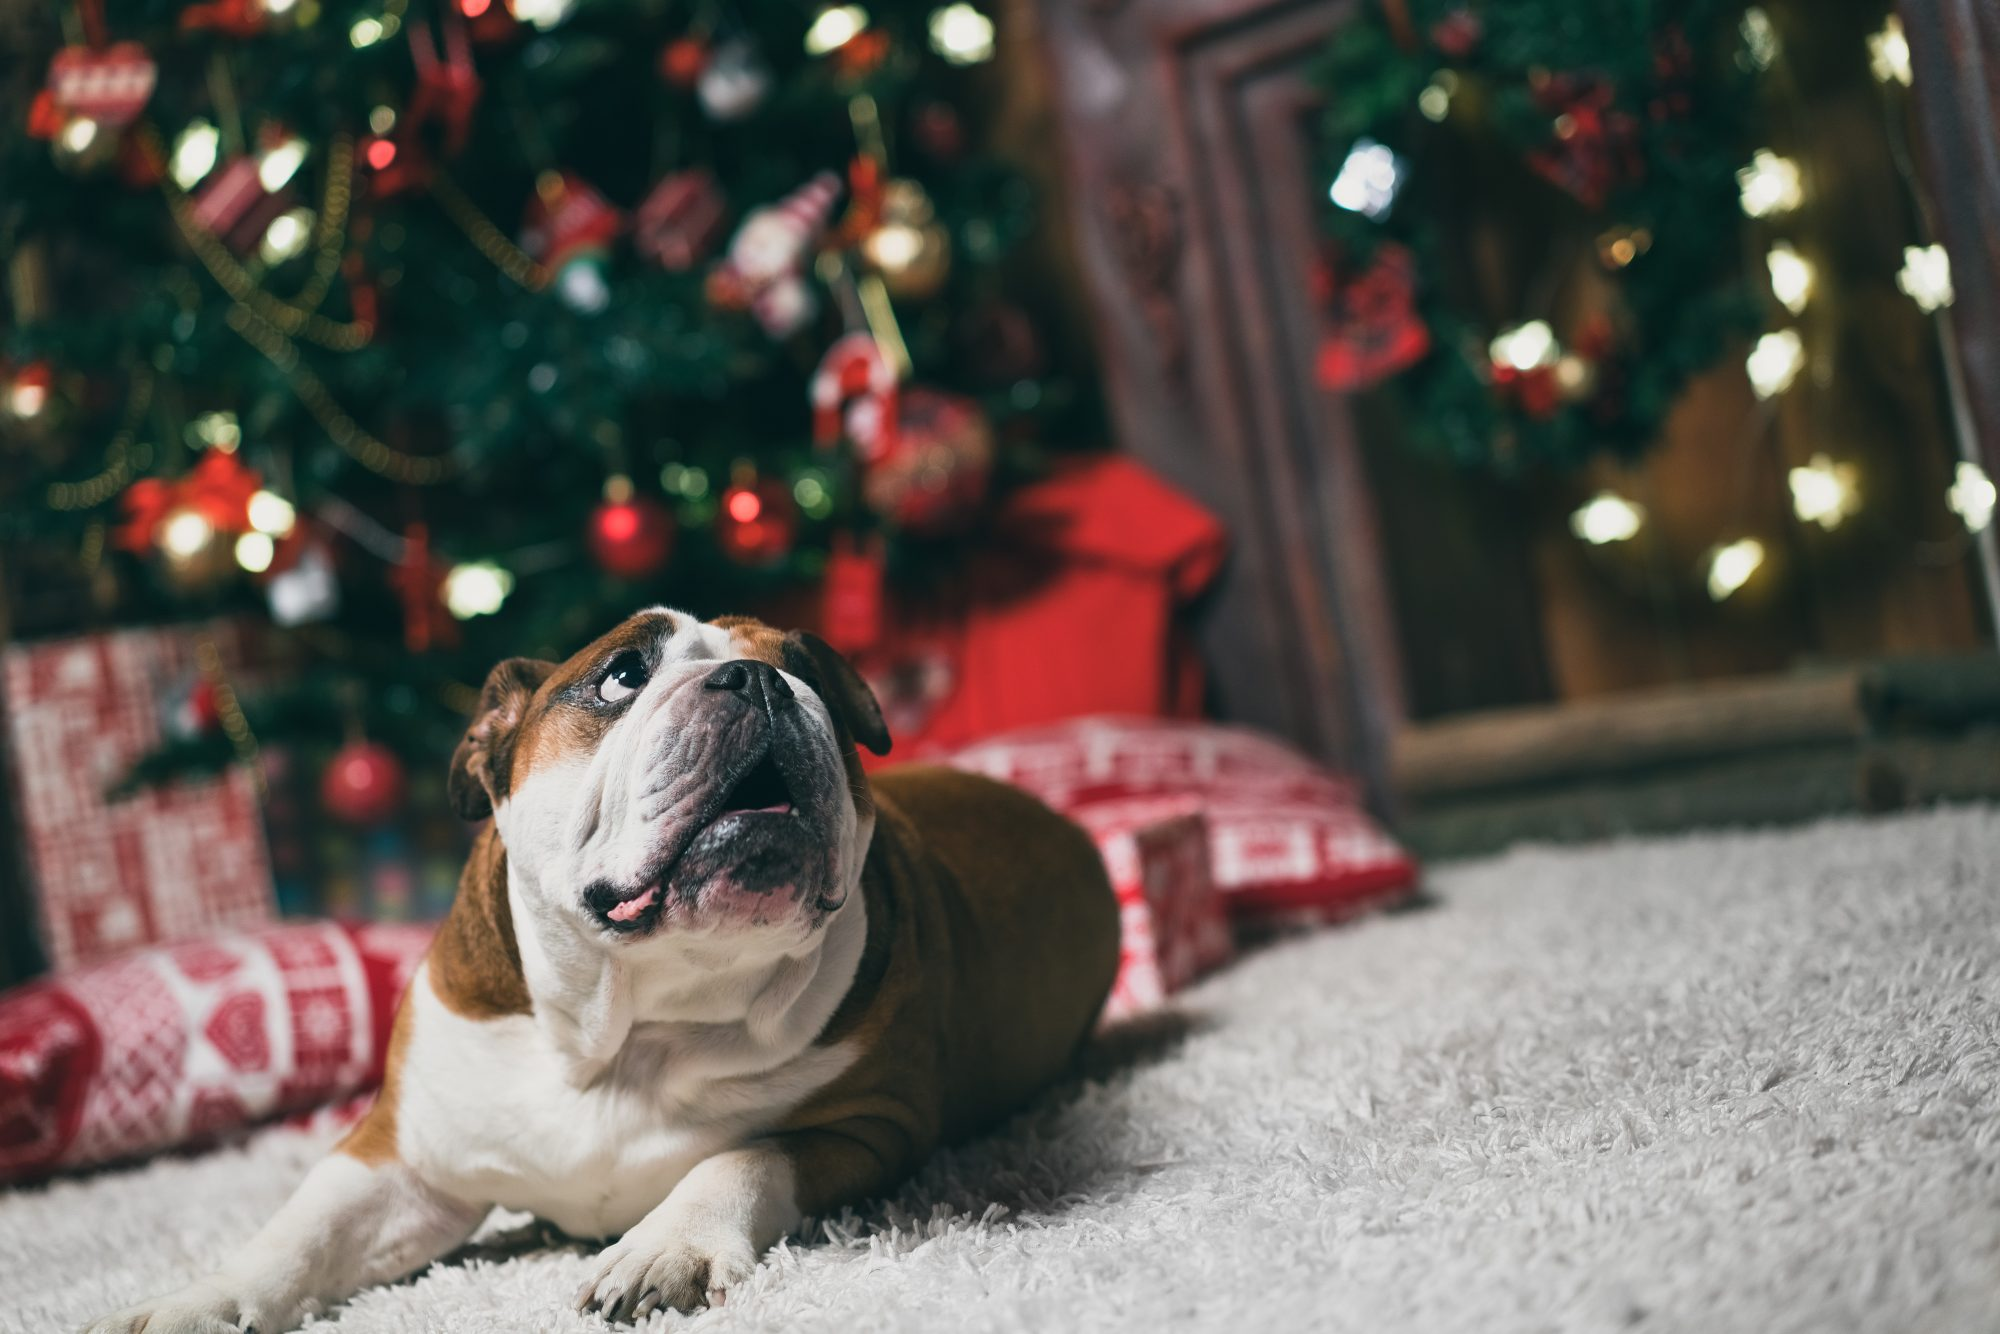 bulldog at the Christmas tree